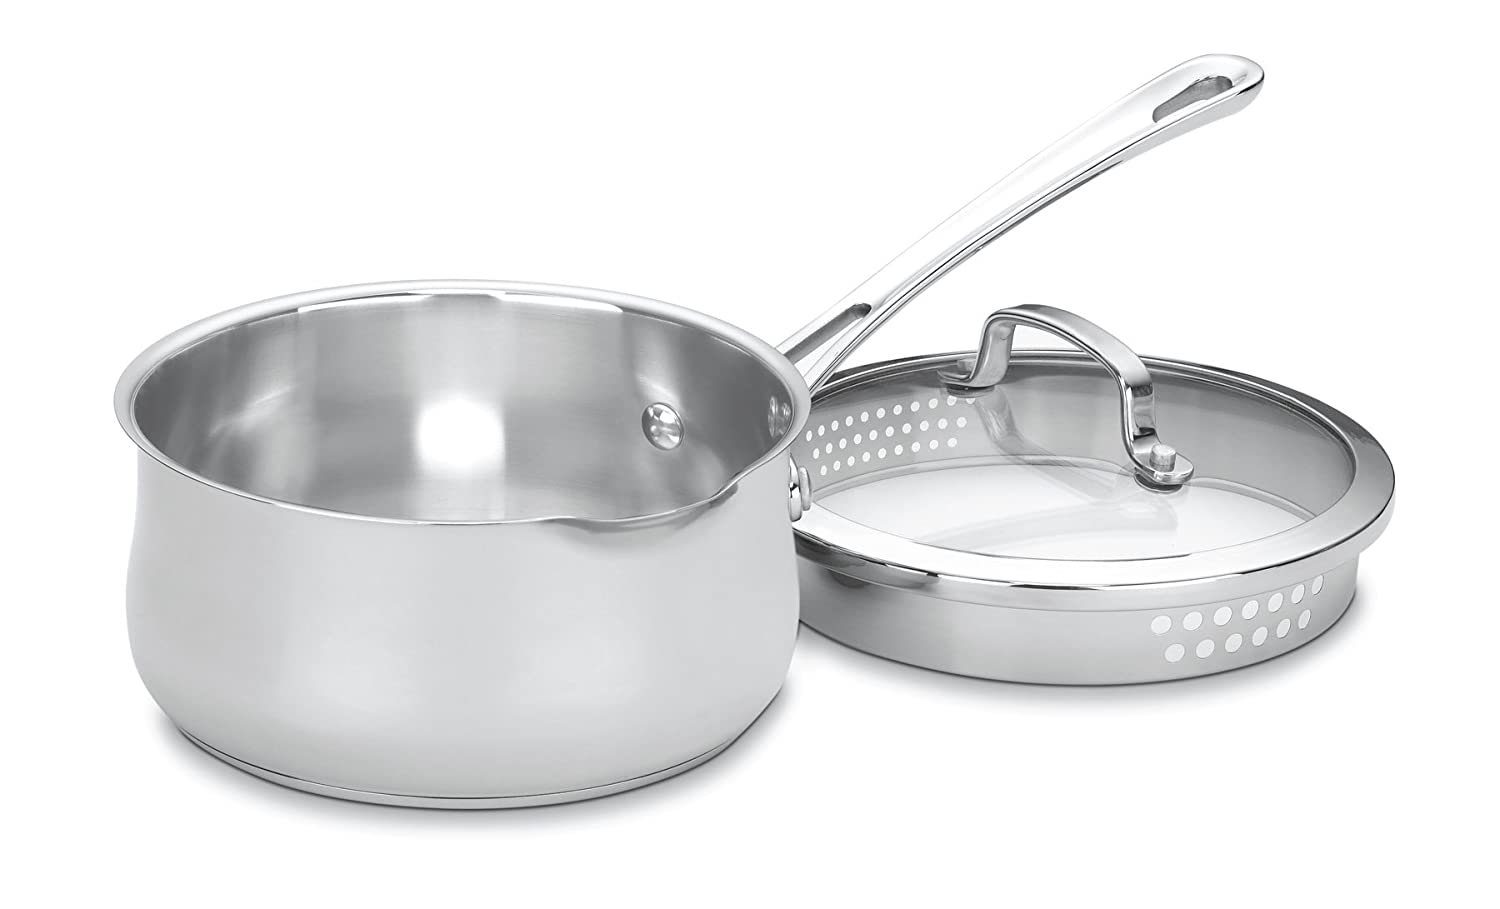 Cuisinart 419-18P Contour Stainless 2-Quart Pour Saucepan with Cover